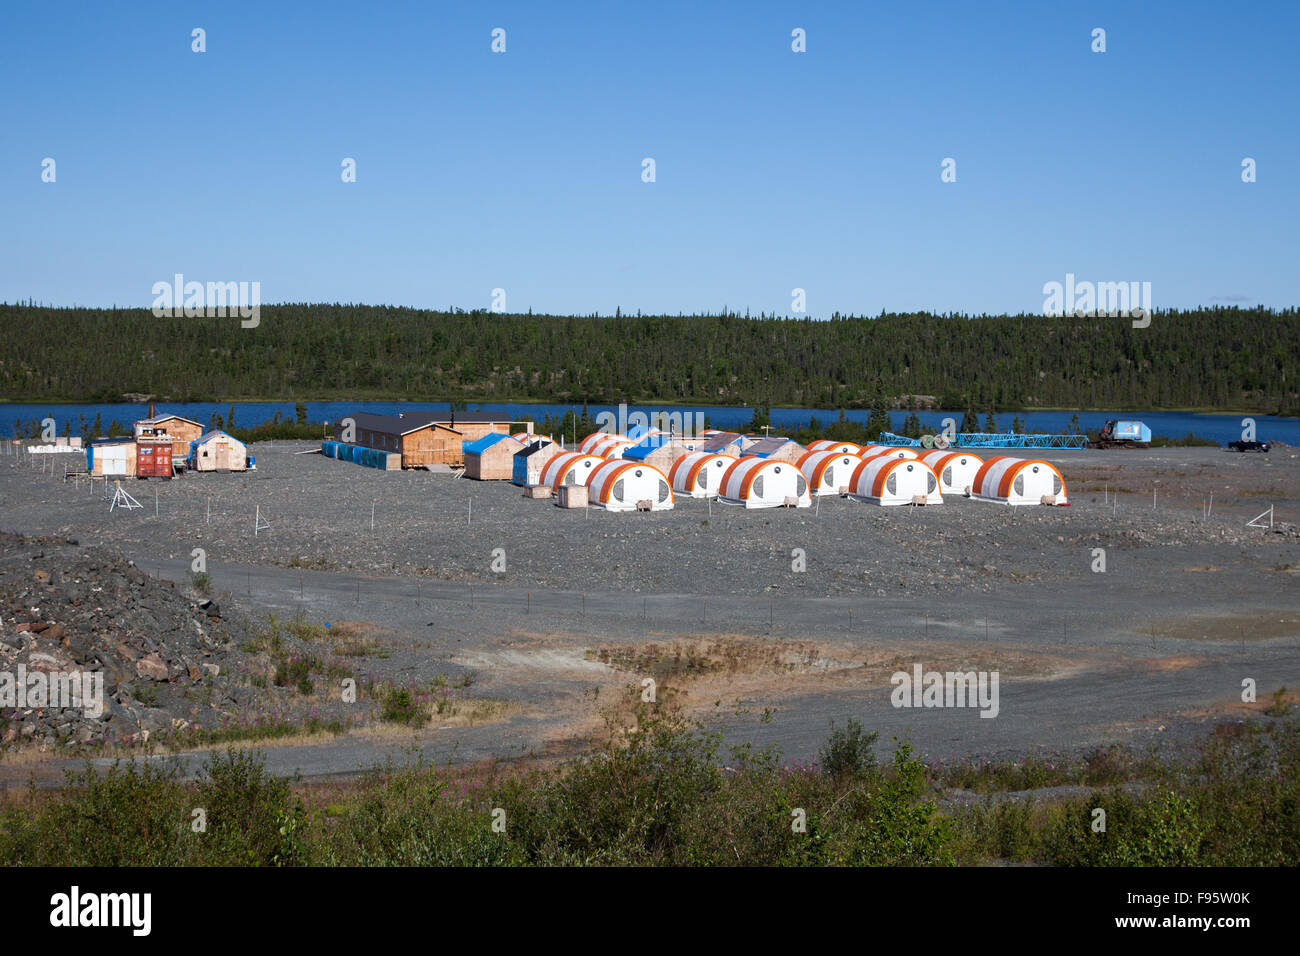 Merc International Minerals' exploration camp at Colomac, Northwest Territories, Canada. Stock Photo